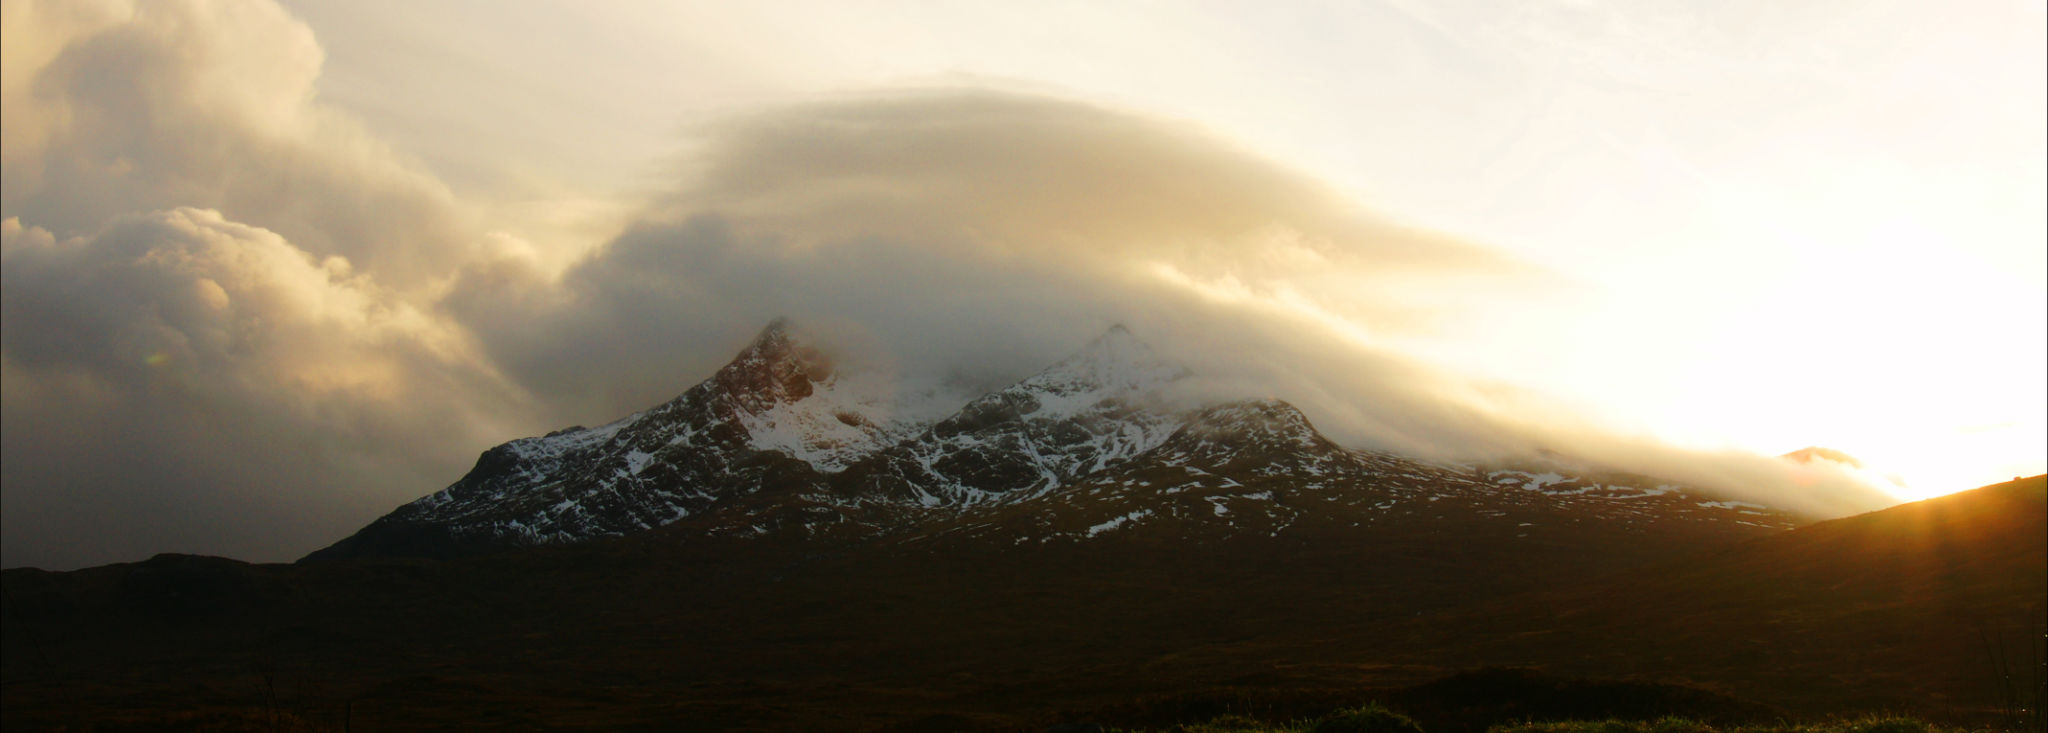 A dusting of snow on the Torridon Hills